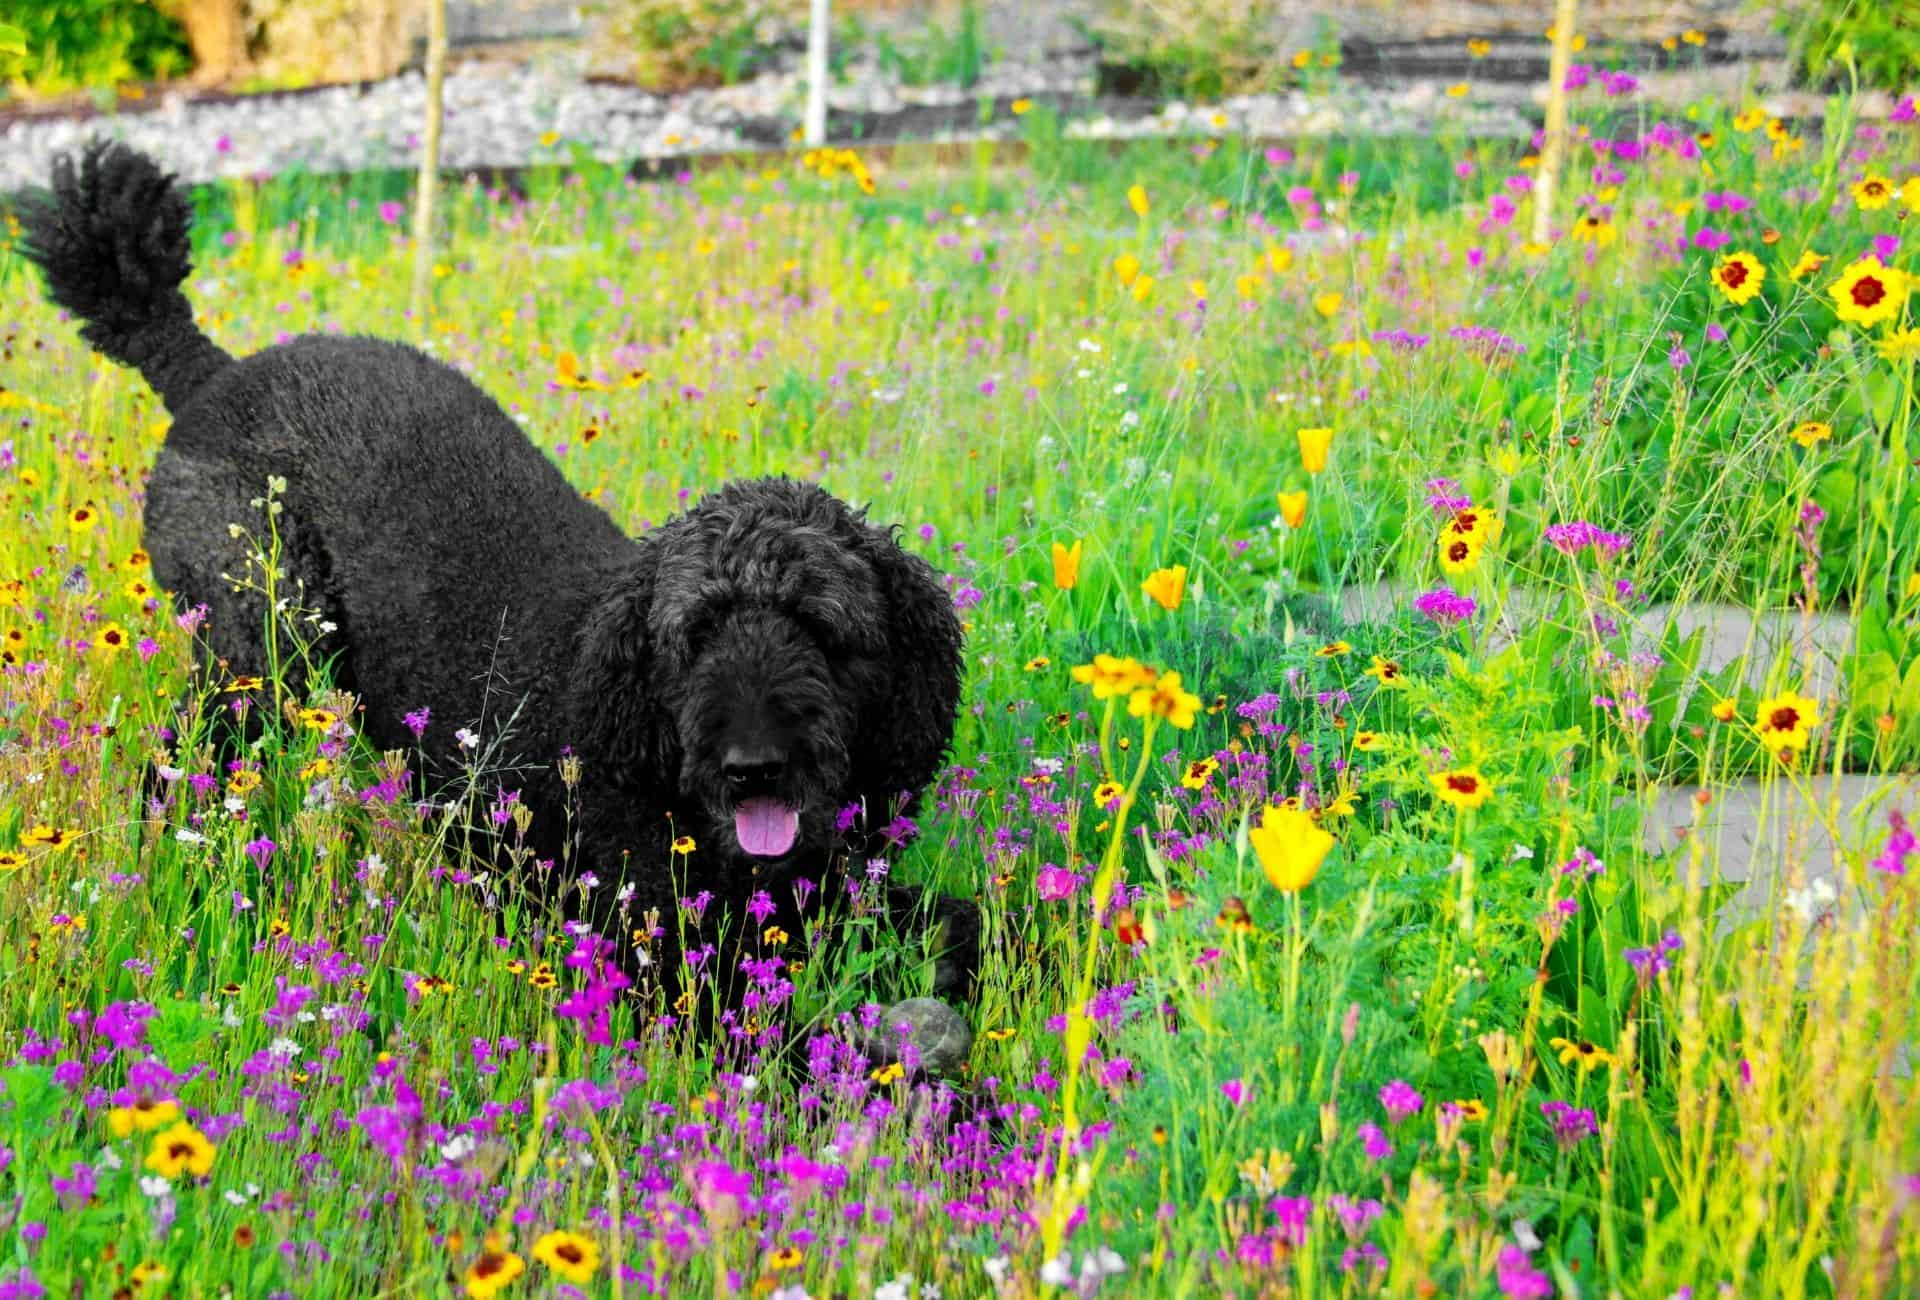 Black Standard Poodle makes a play-bow in a colorful flower bed.